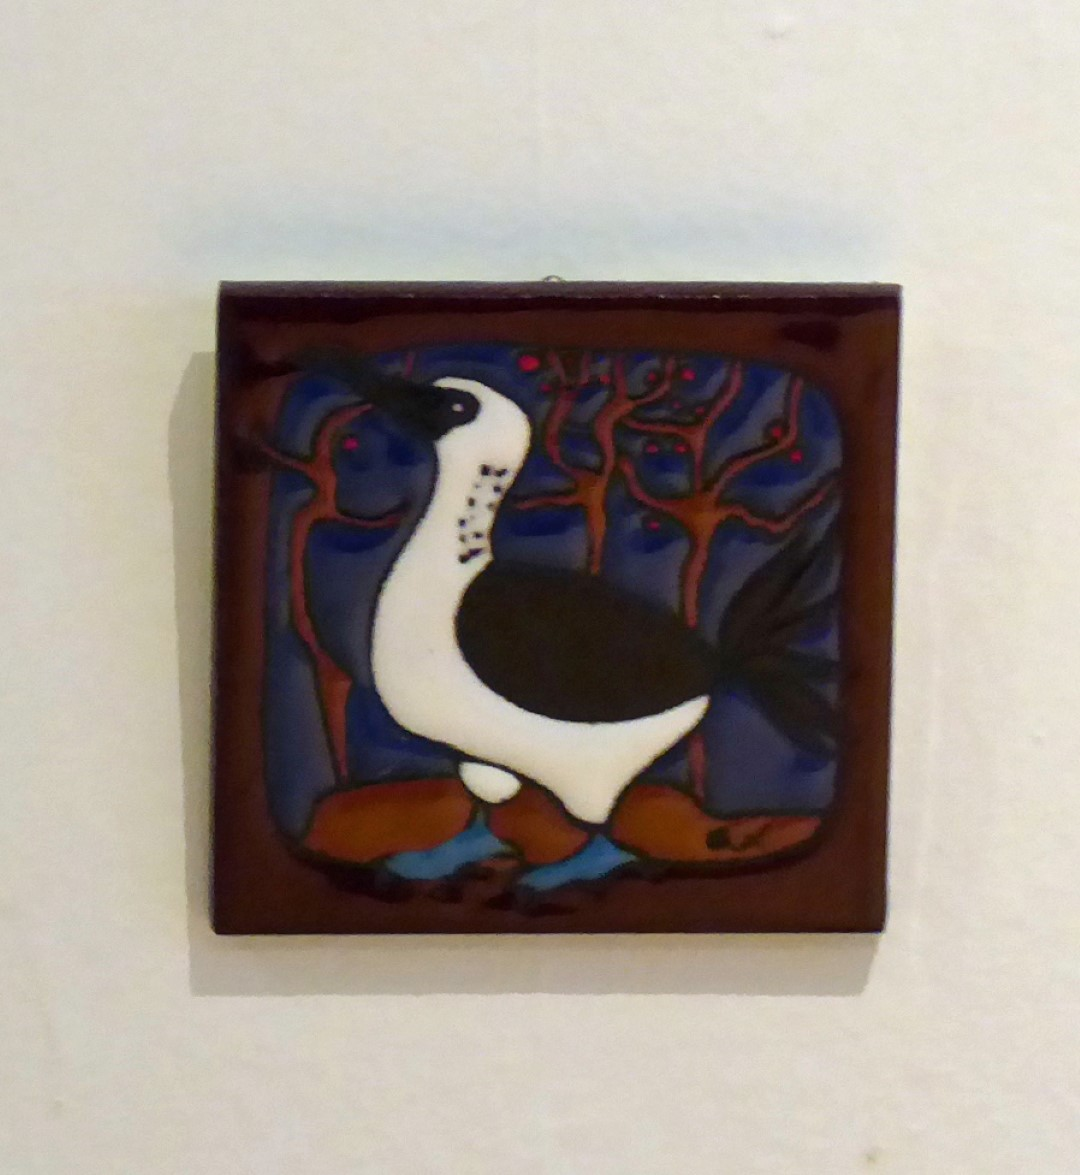 Tile with Blue-footed Booby